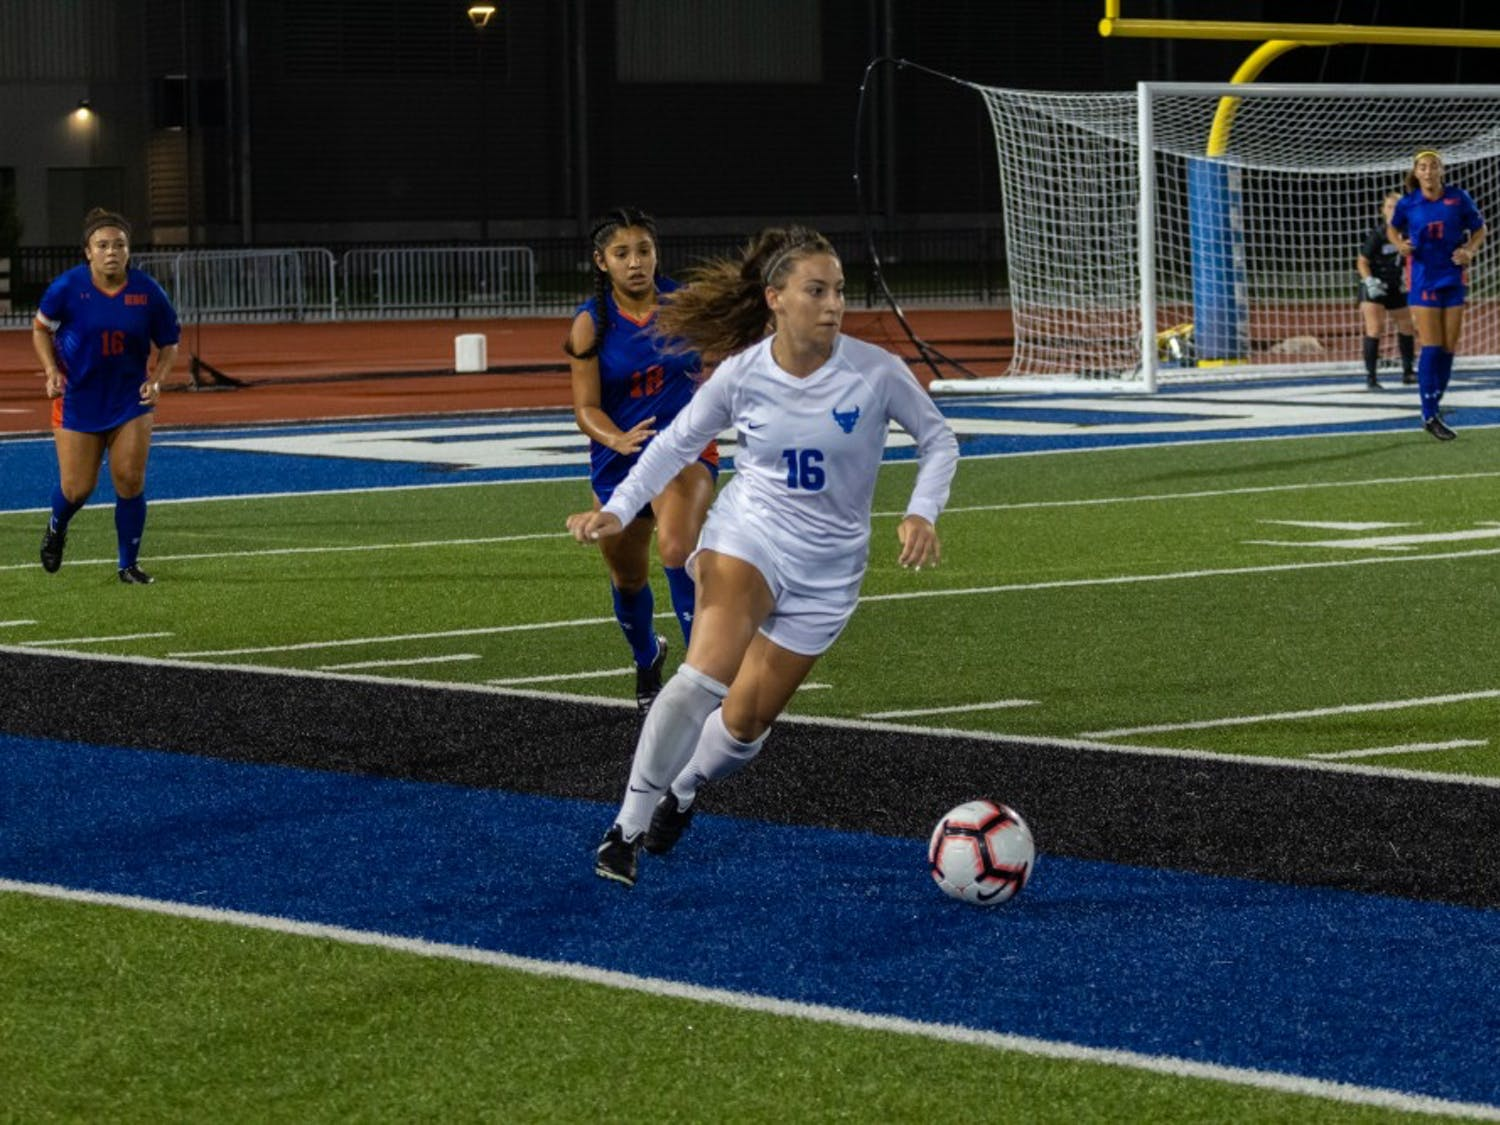 Senior Carley Zoccali was one of three Bulls to earn a goal during Friday's home victory.